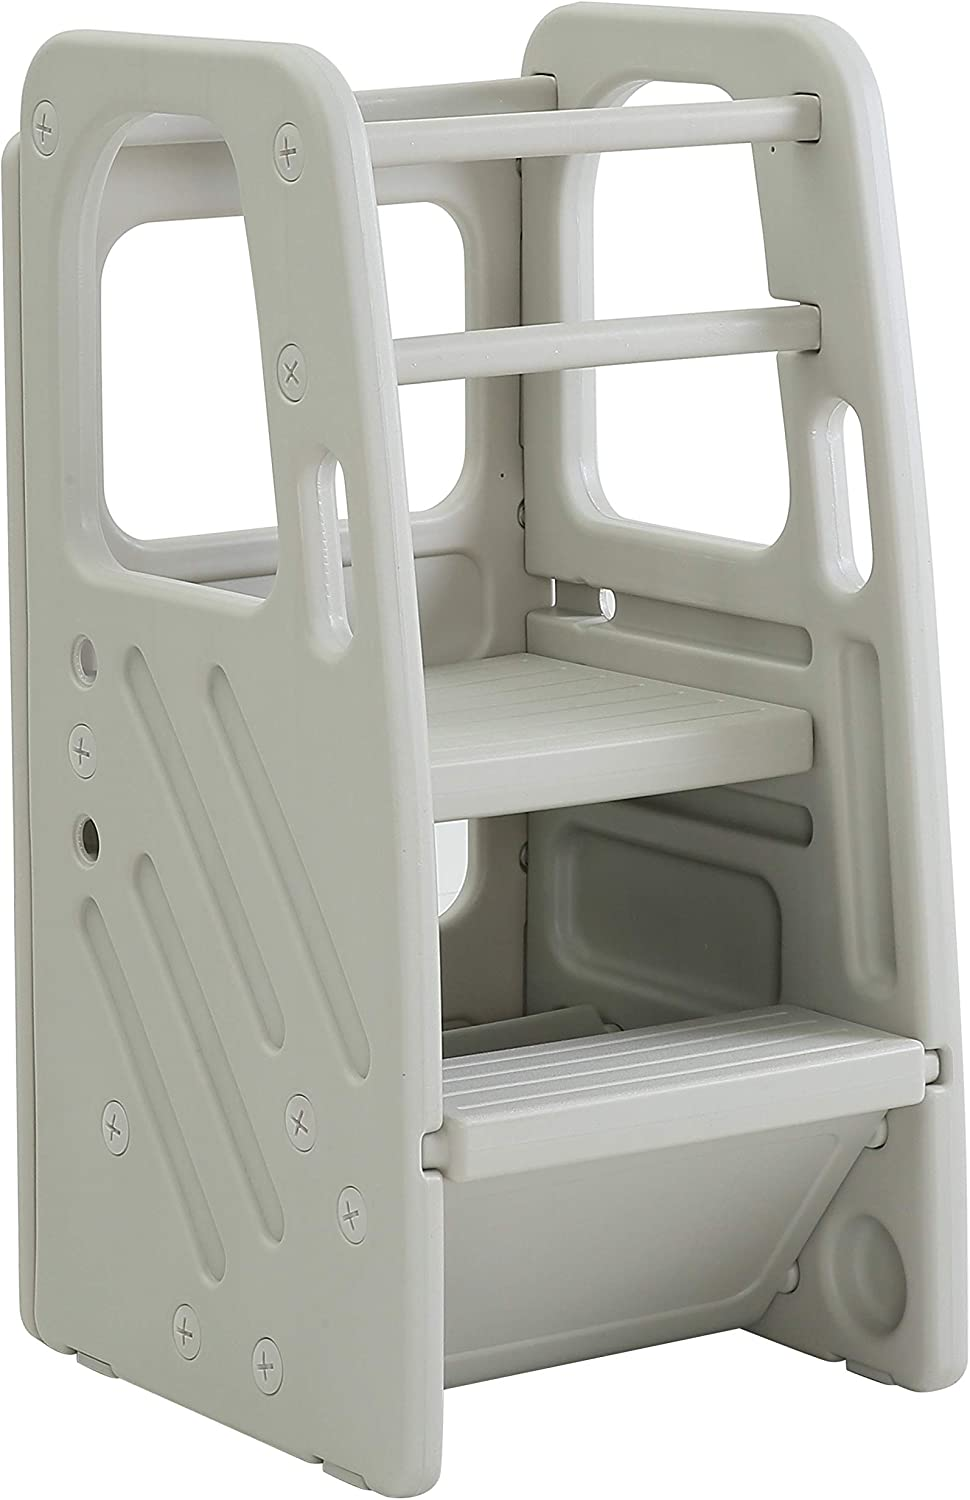 SDADI Cash special price Kids Step Stool with Three Adjustable Heights Chi Over item handling Plastic